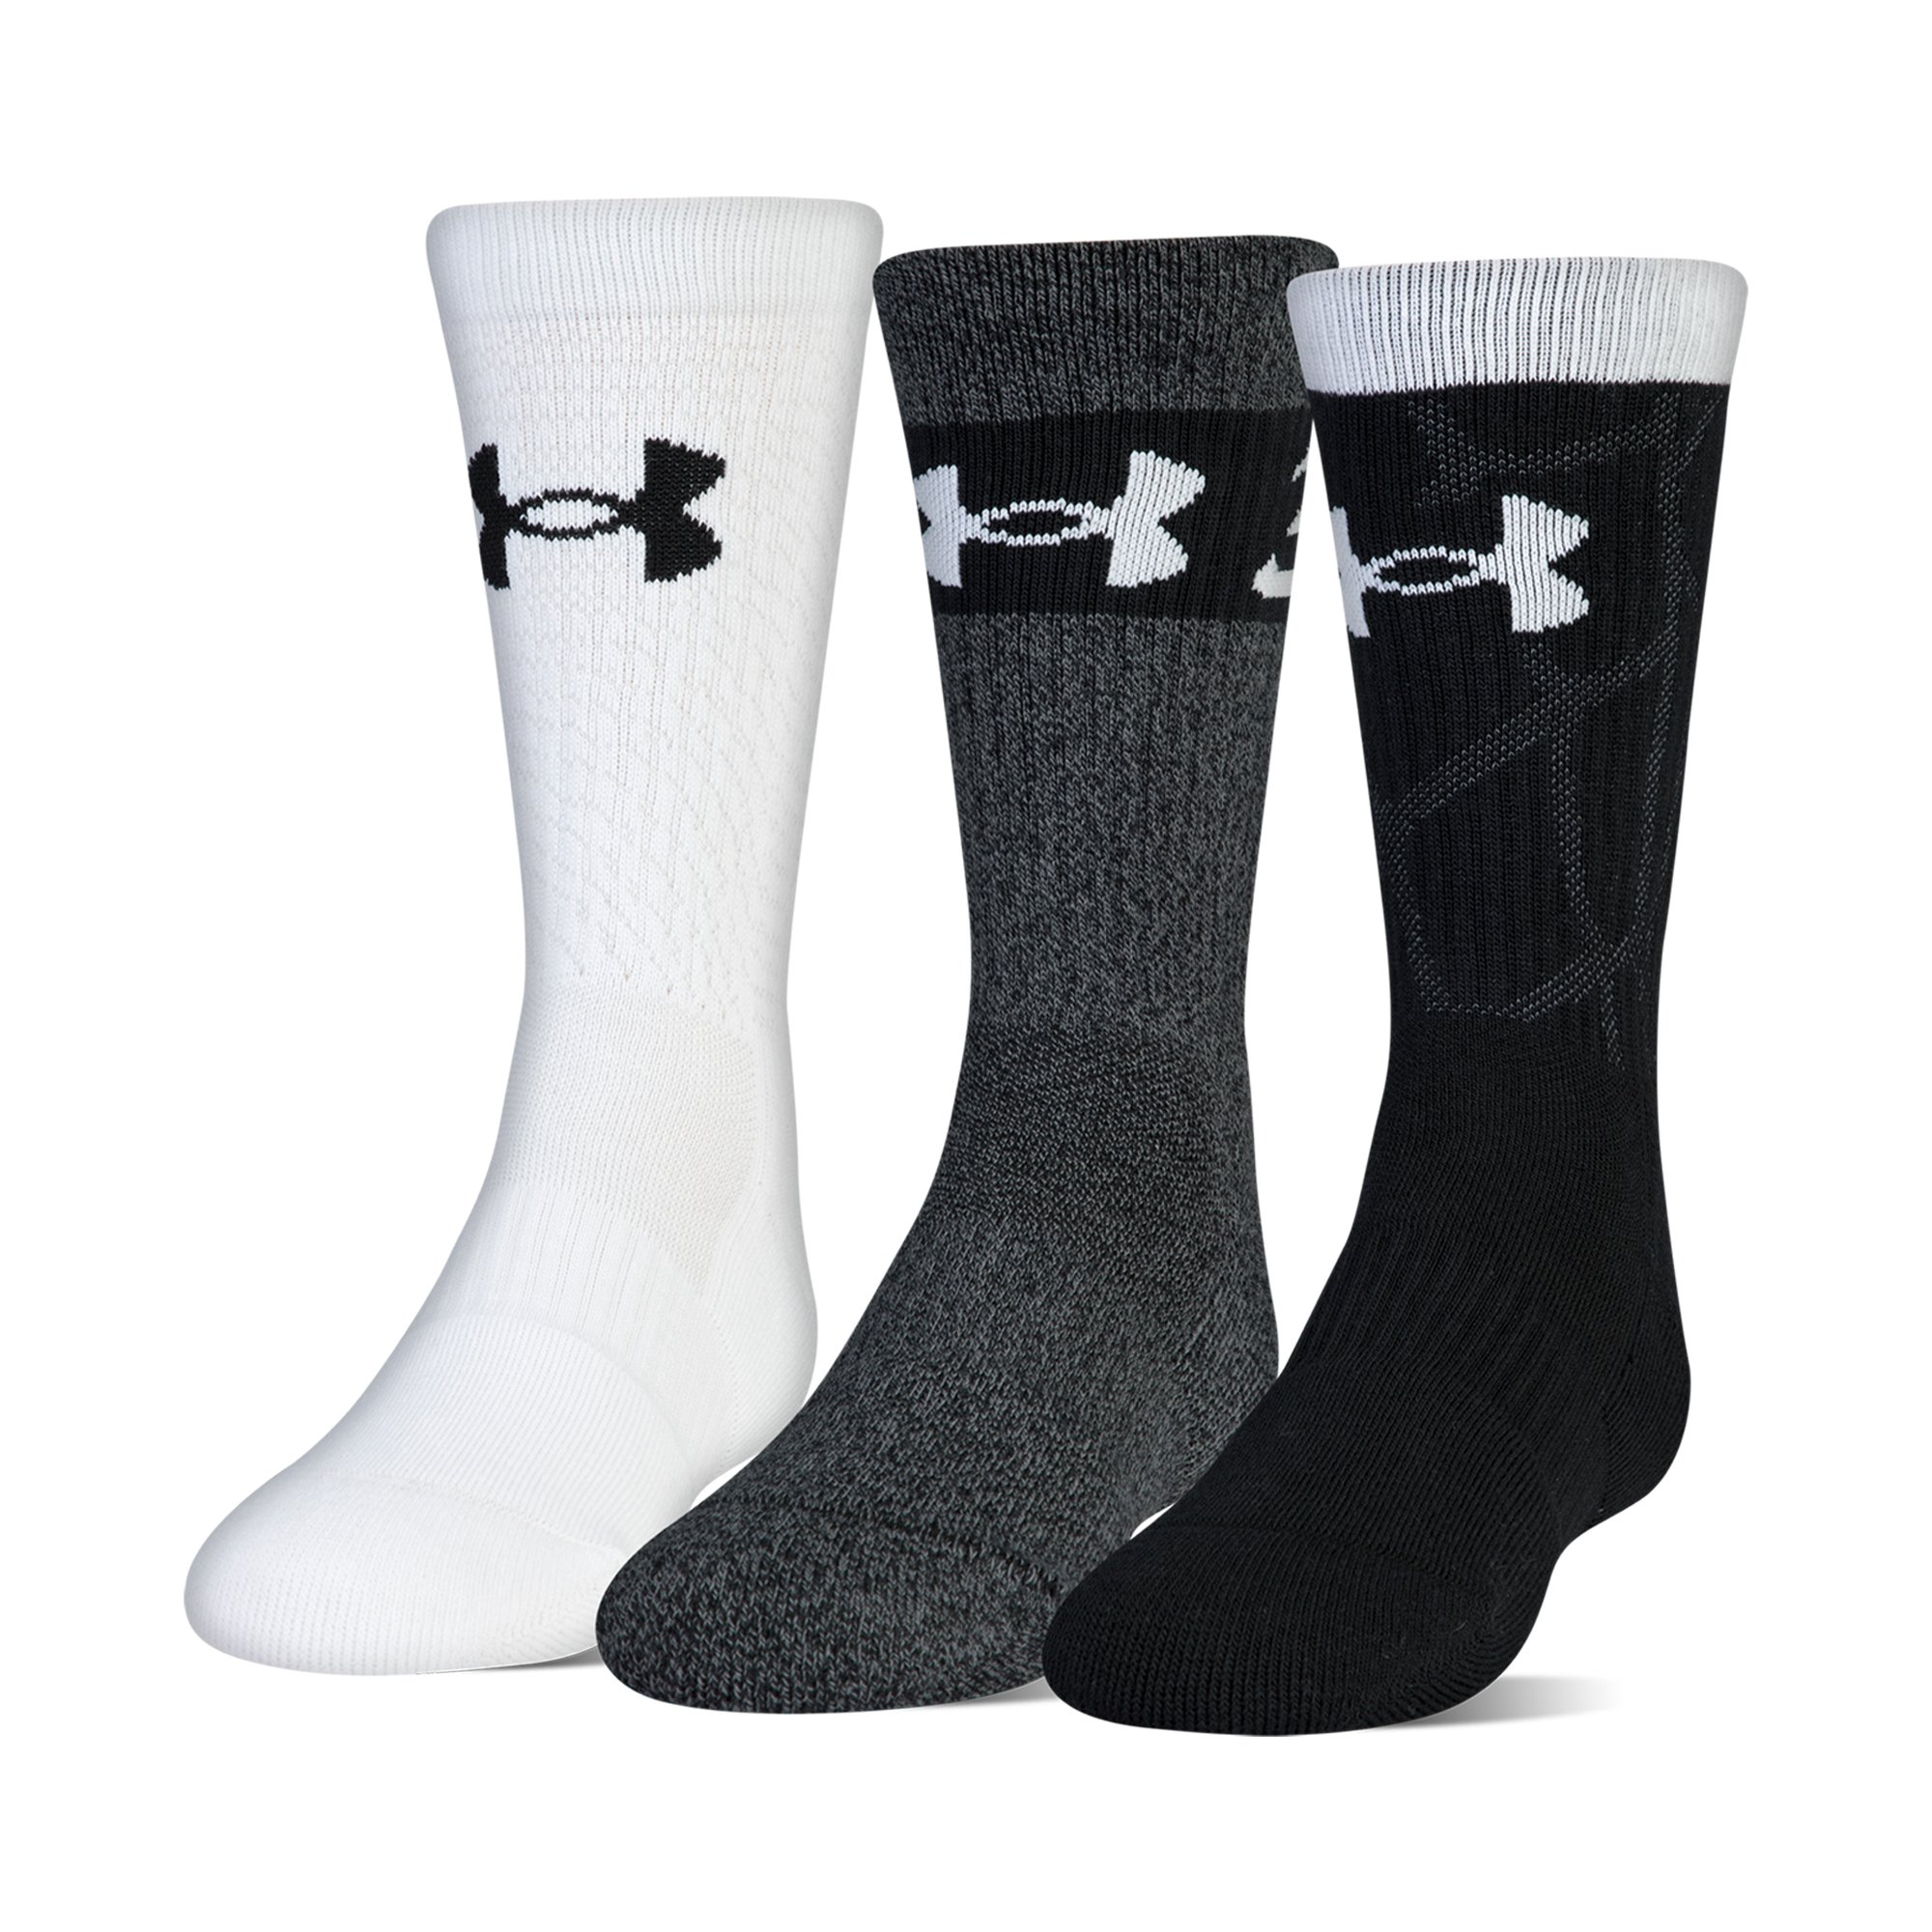 Under Armour Phenom Sc30 2.0 Crew Socks, 3 Pairs, Black Assorted, Youth Large by Under Armour